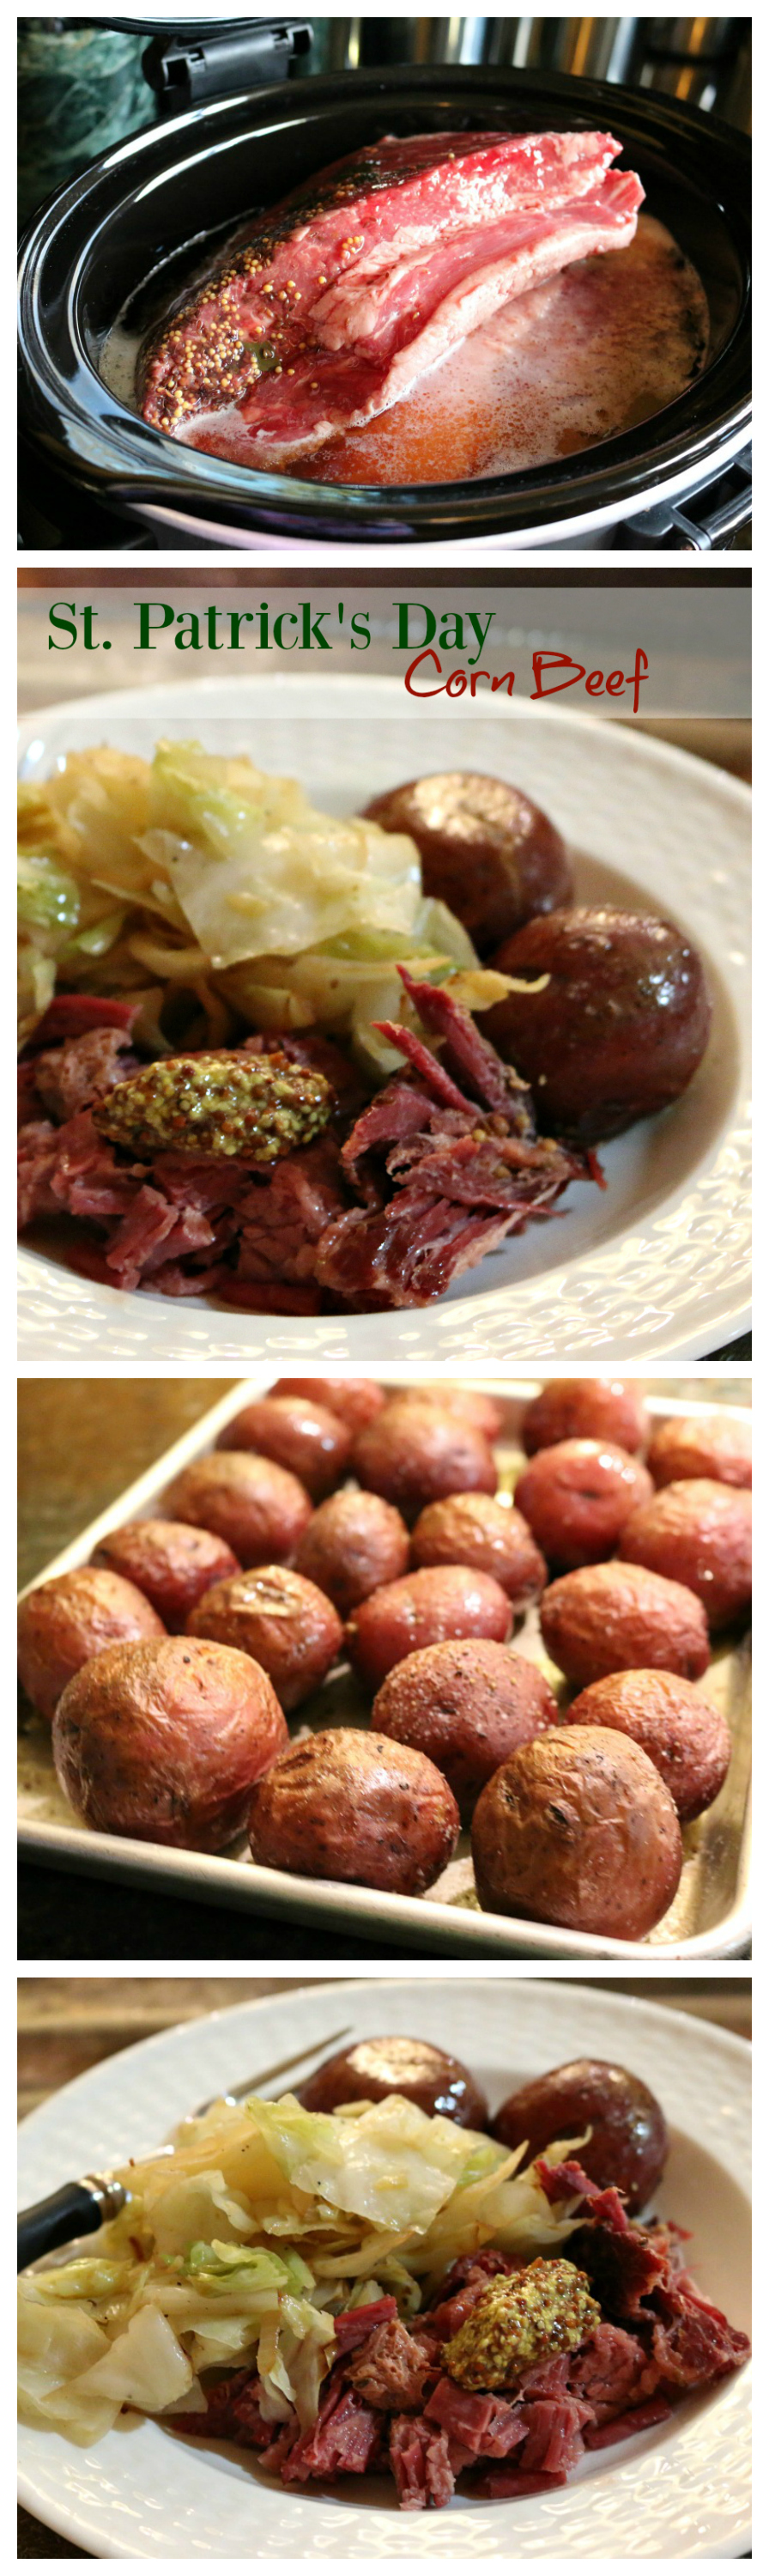 St.Patricks Day Corn Beef Crock Pot Recipe CeceliasGoodStuff.com   Good Food For Good People